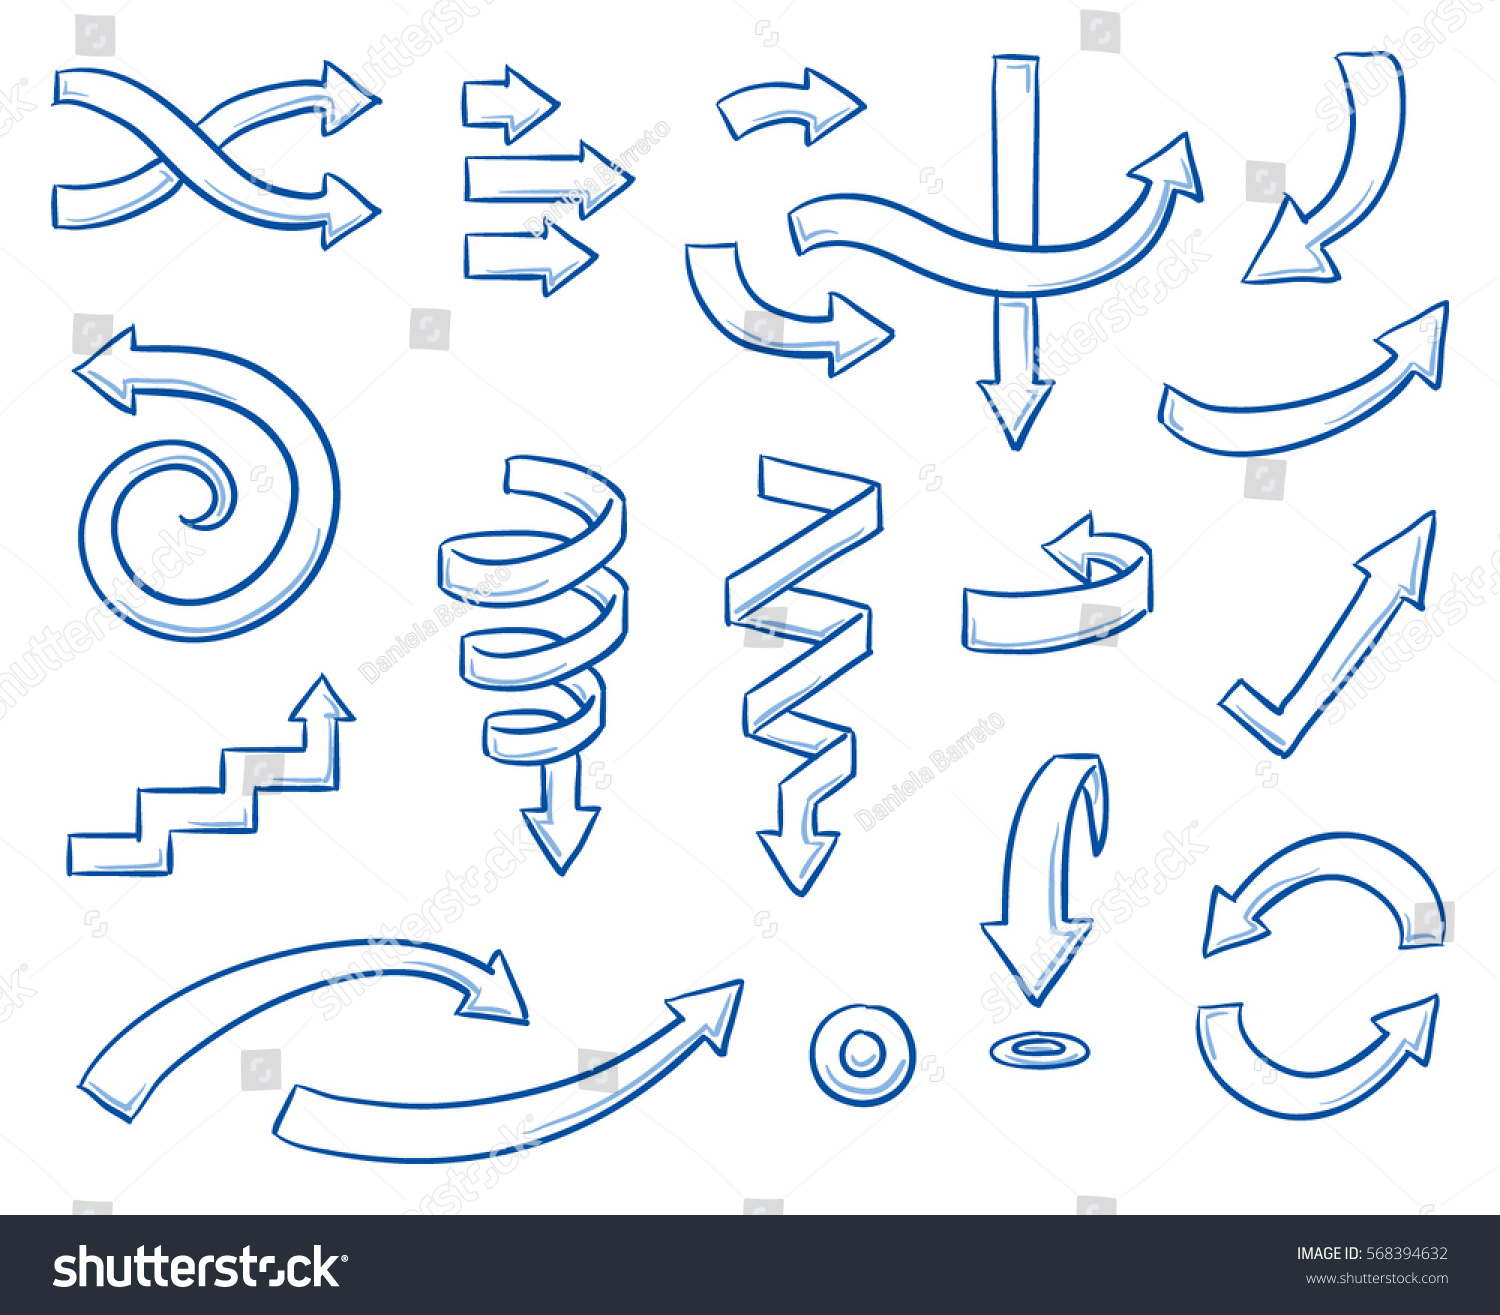 Set different curved arrows work flow stock vector 568394632 set of different curved arrows for work flow charts video clips or infographics hand nvjuhfo Choice Image